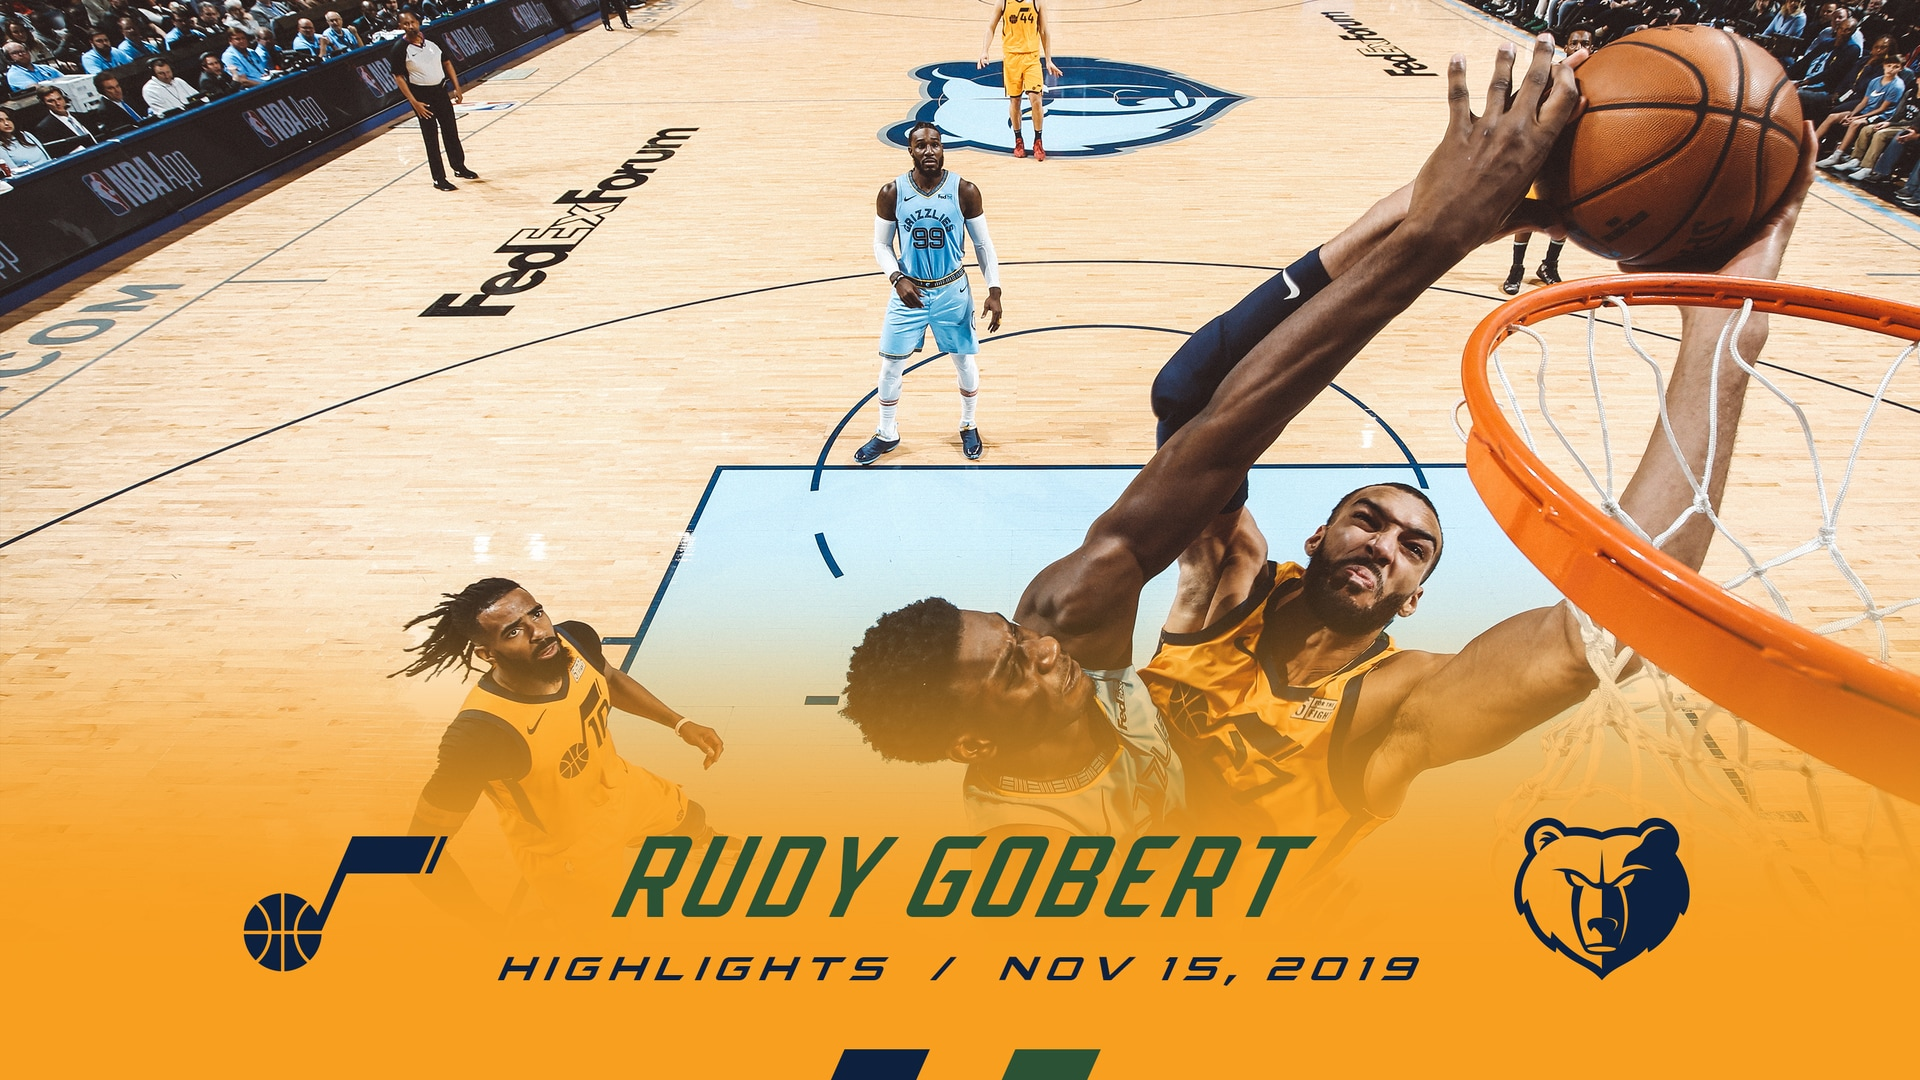 Highlights: Rudy Gobert—23 points, 17 rebounds, 5 blocks